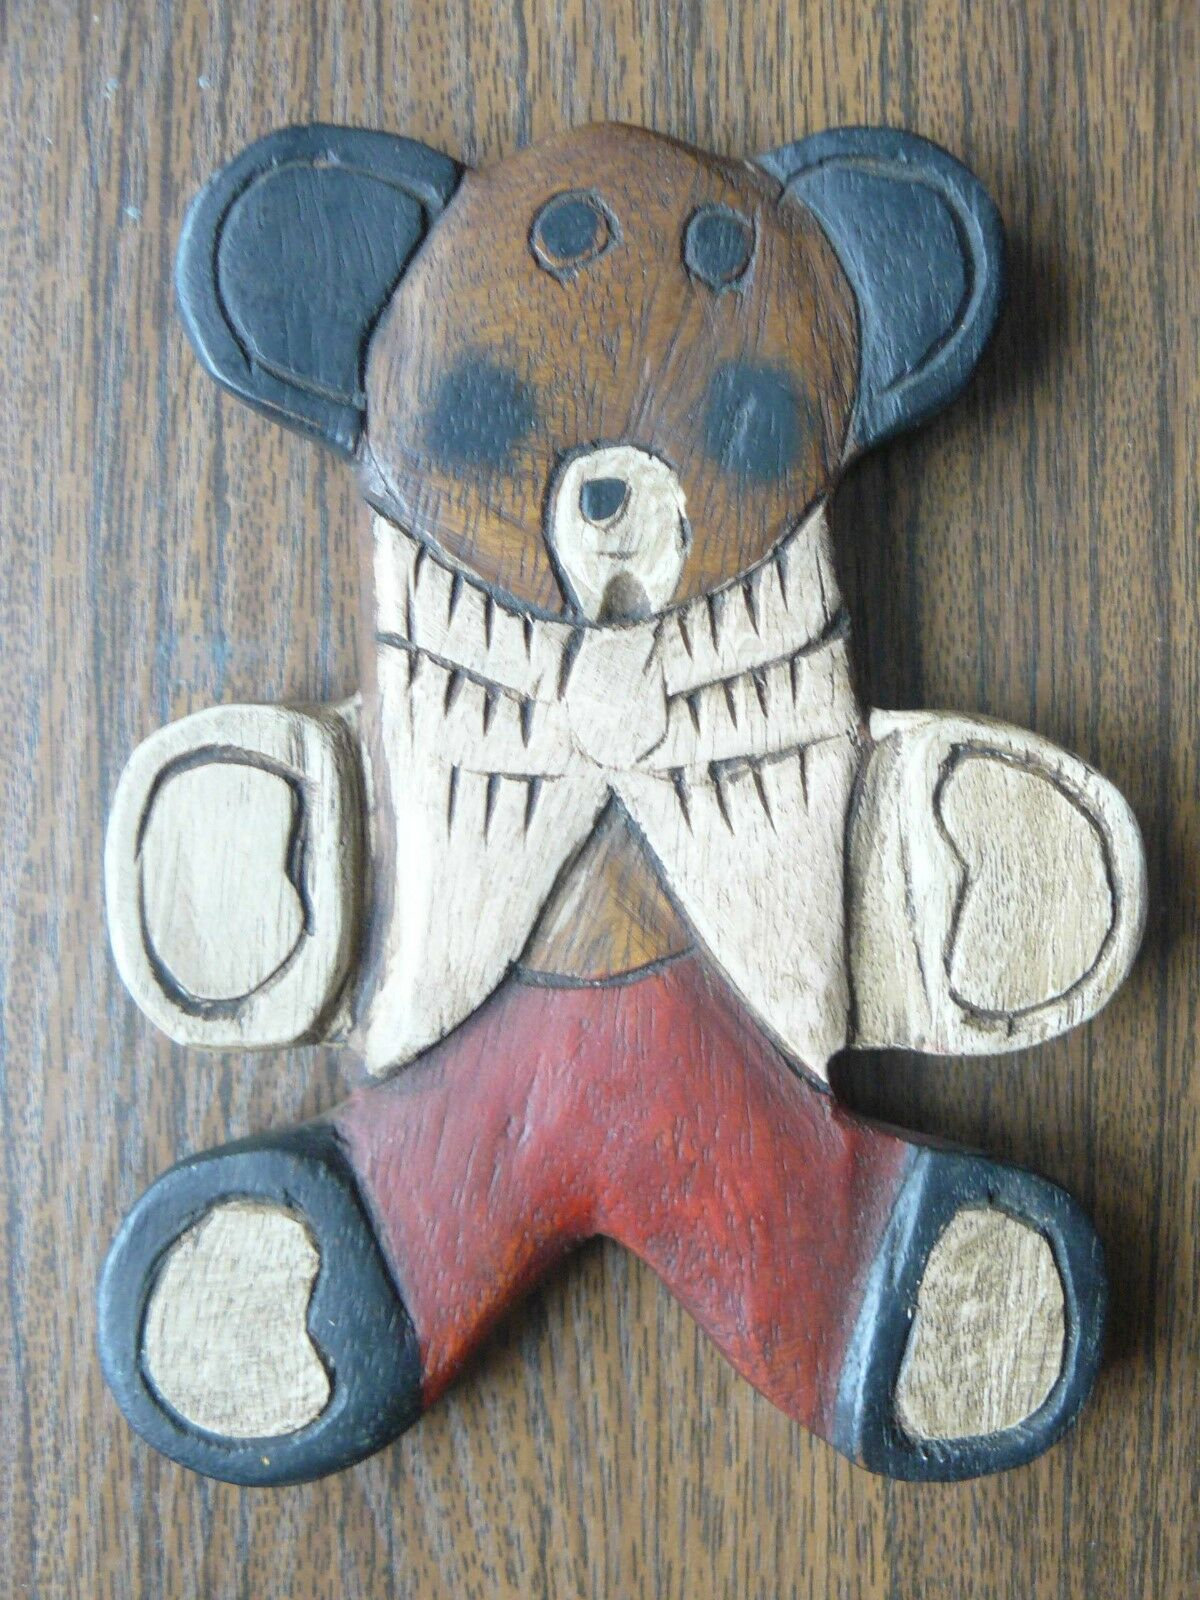 Estonian Vintage Private Handmade Wooden Teddy Bear Toy 1920s 1920s 1920s c238d3